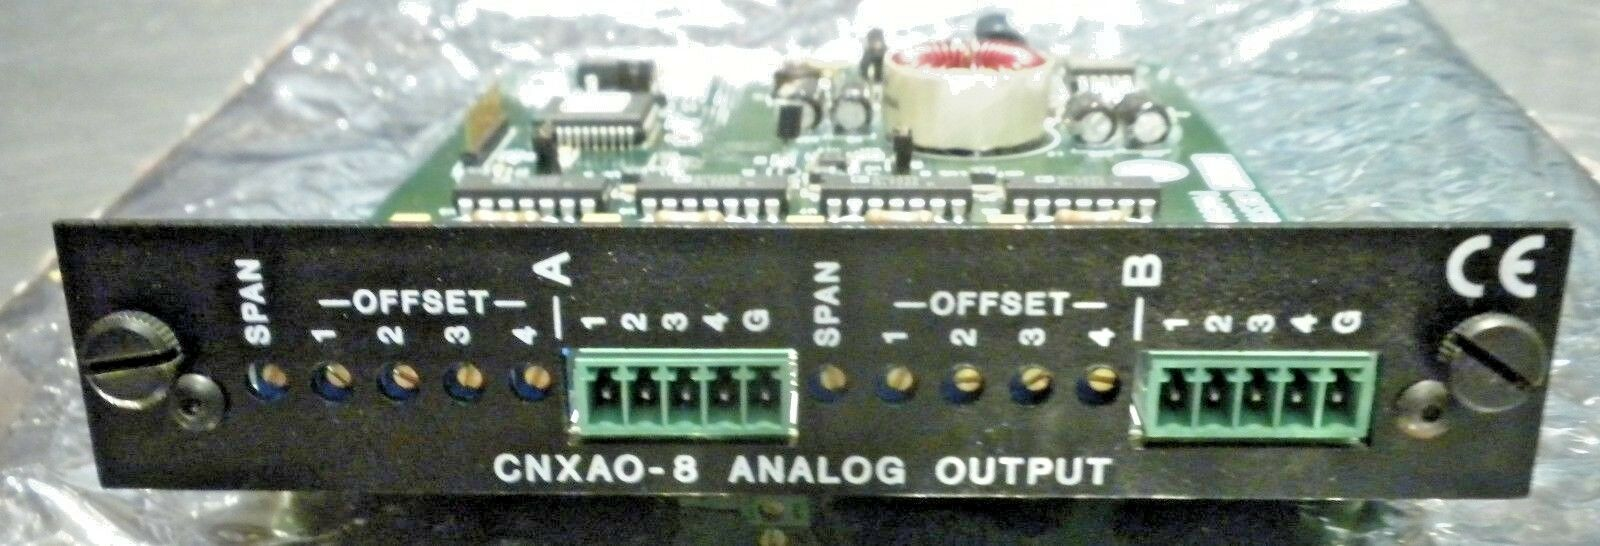 CRESTRON CNXAO-8 8 Analog Output Card for Y-Bus Expansion Slot